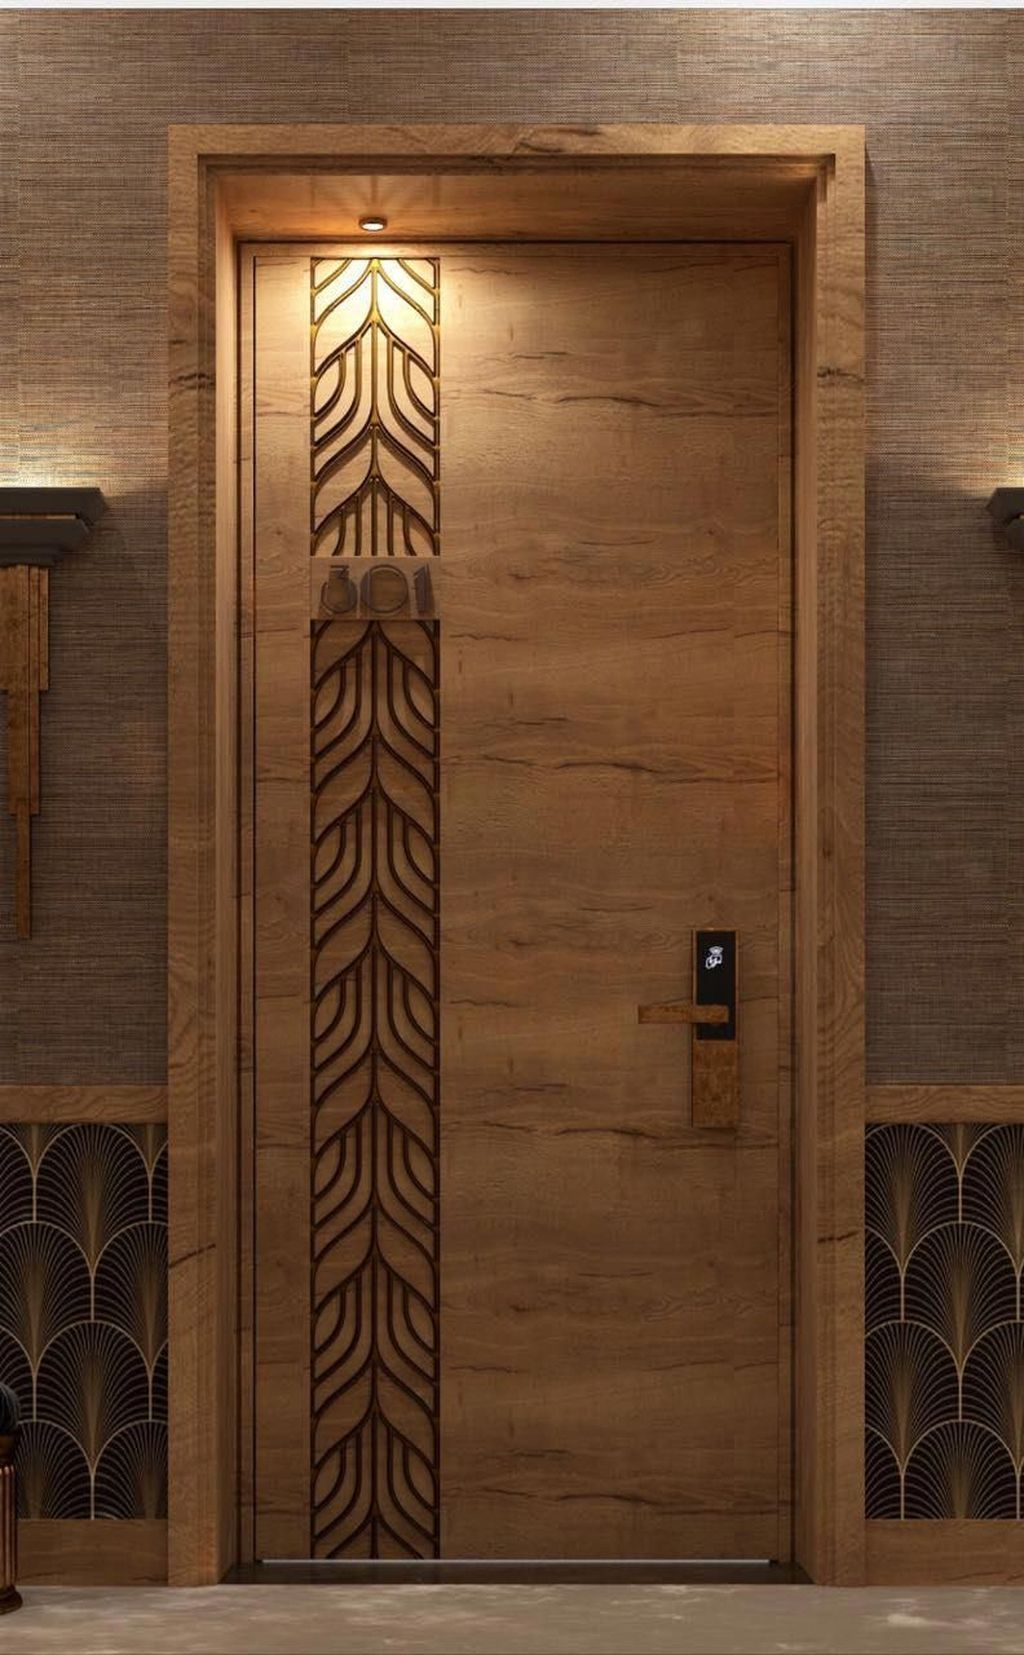 20+ Artistic Wooden Door Design Ideas To Try Right Now in ...